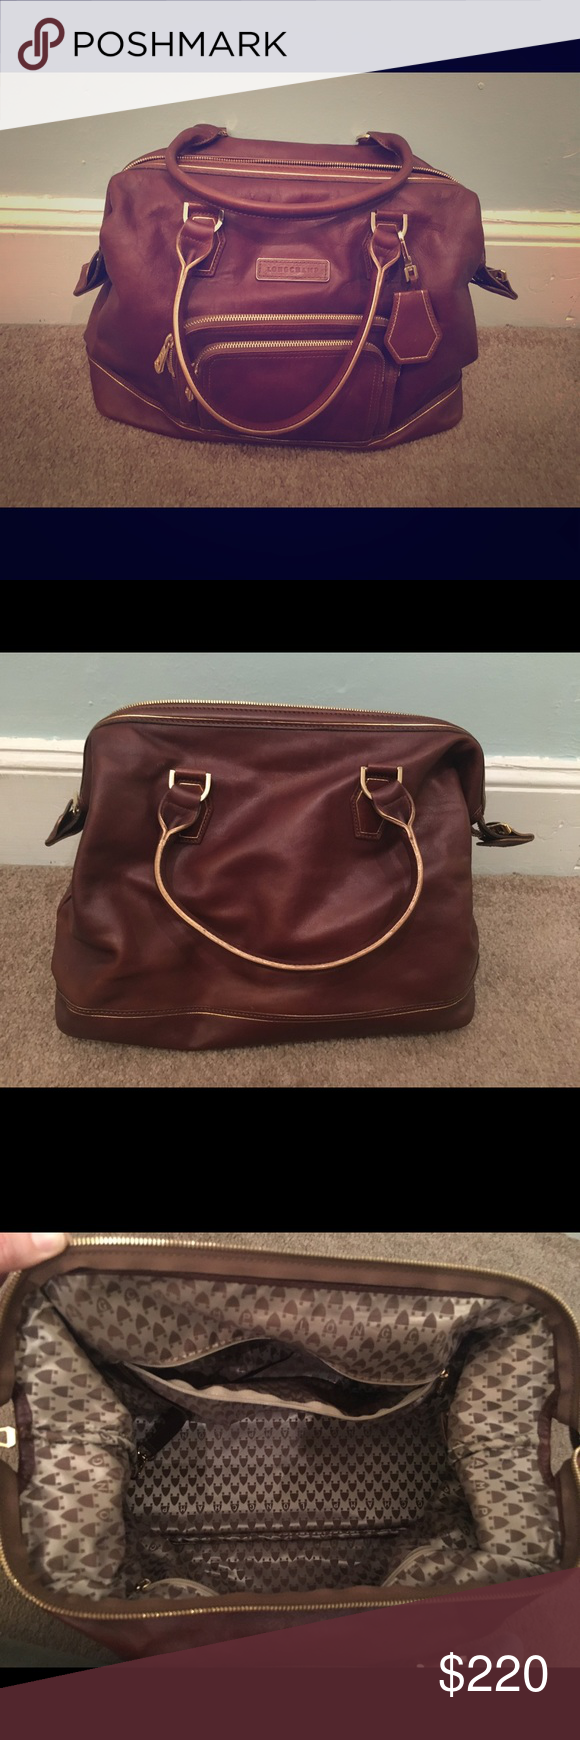 Longchamp Bowler Bag I Purchased This Off Of Ebay And